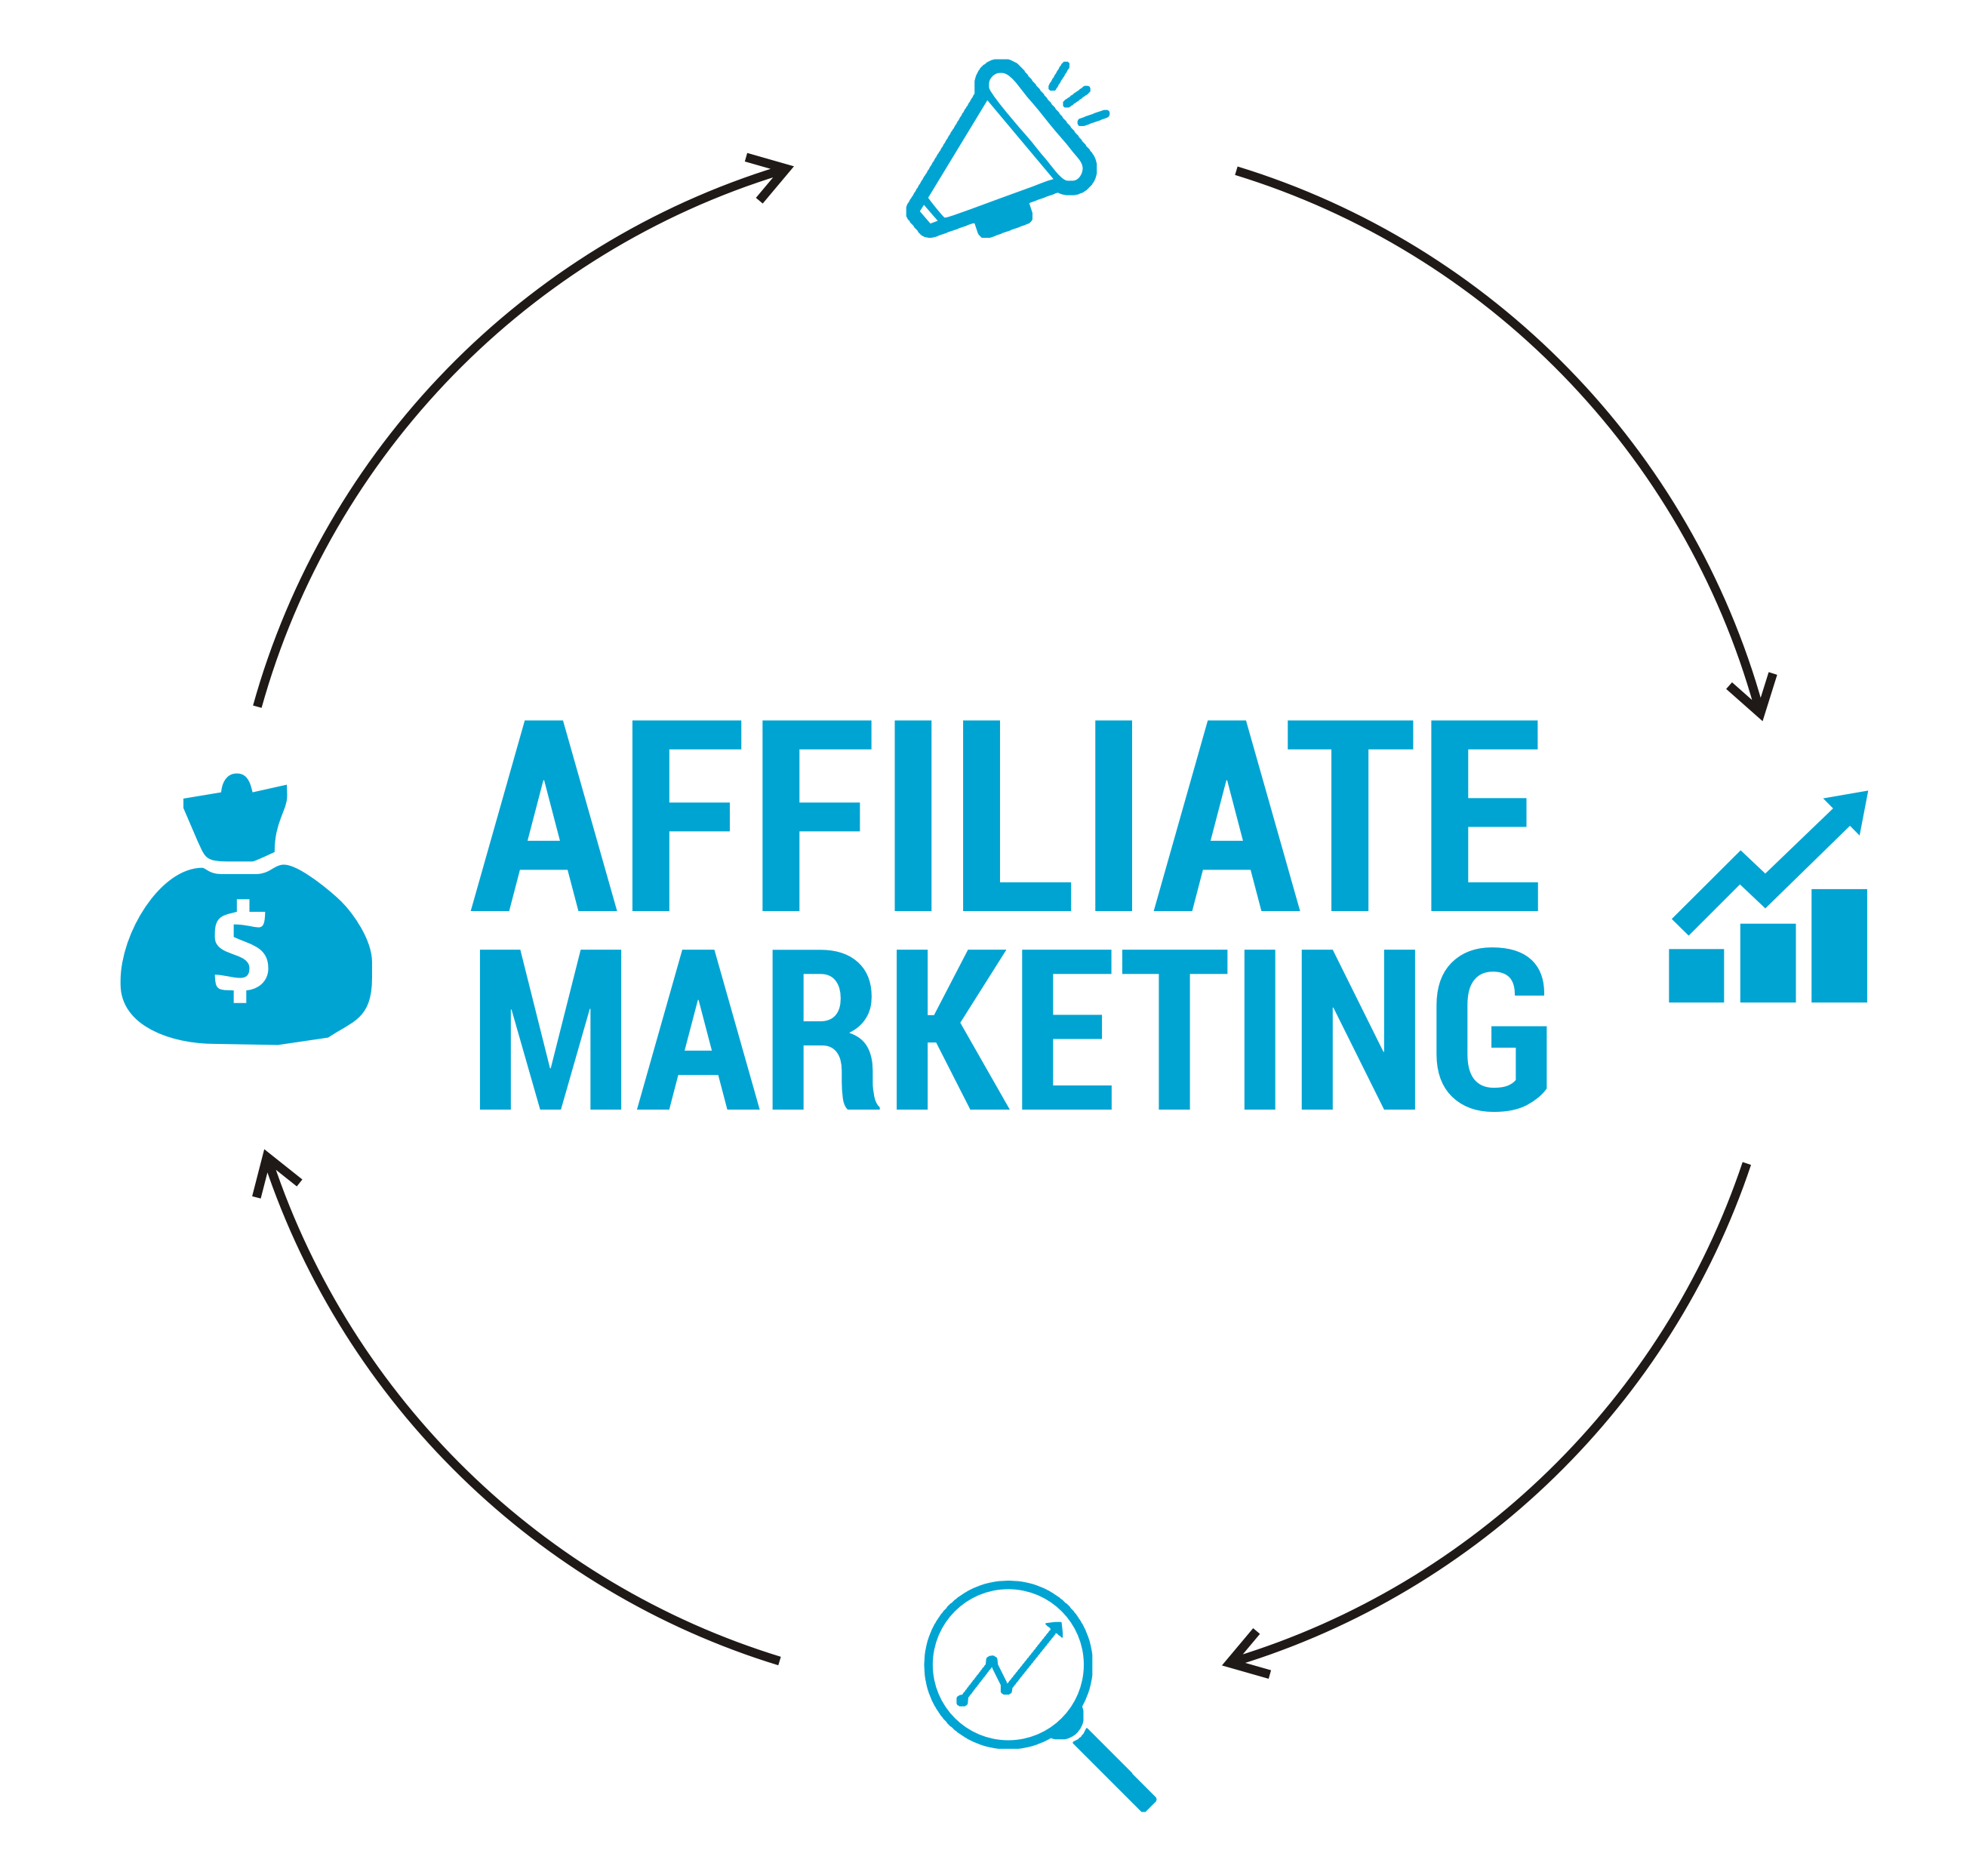 Affiliate marketing as a new marketing strategy - Digital ...